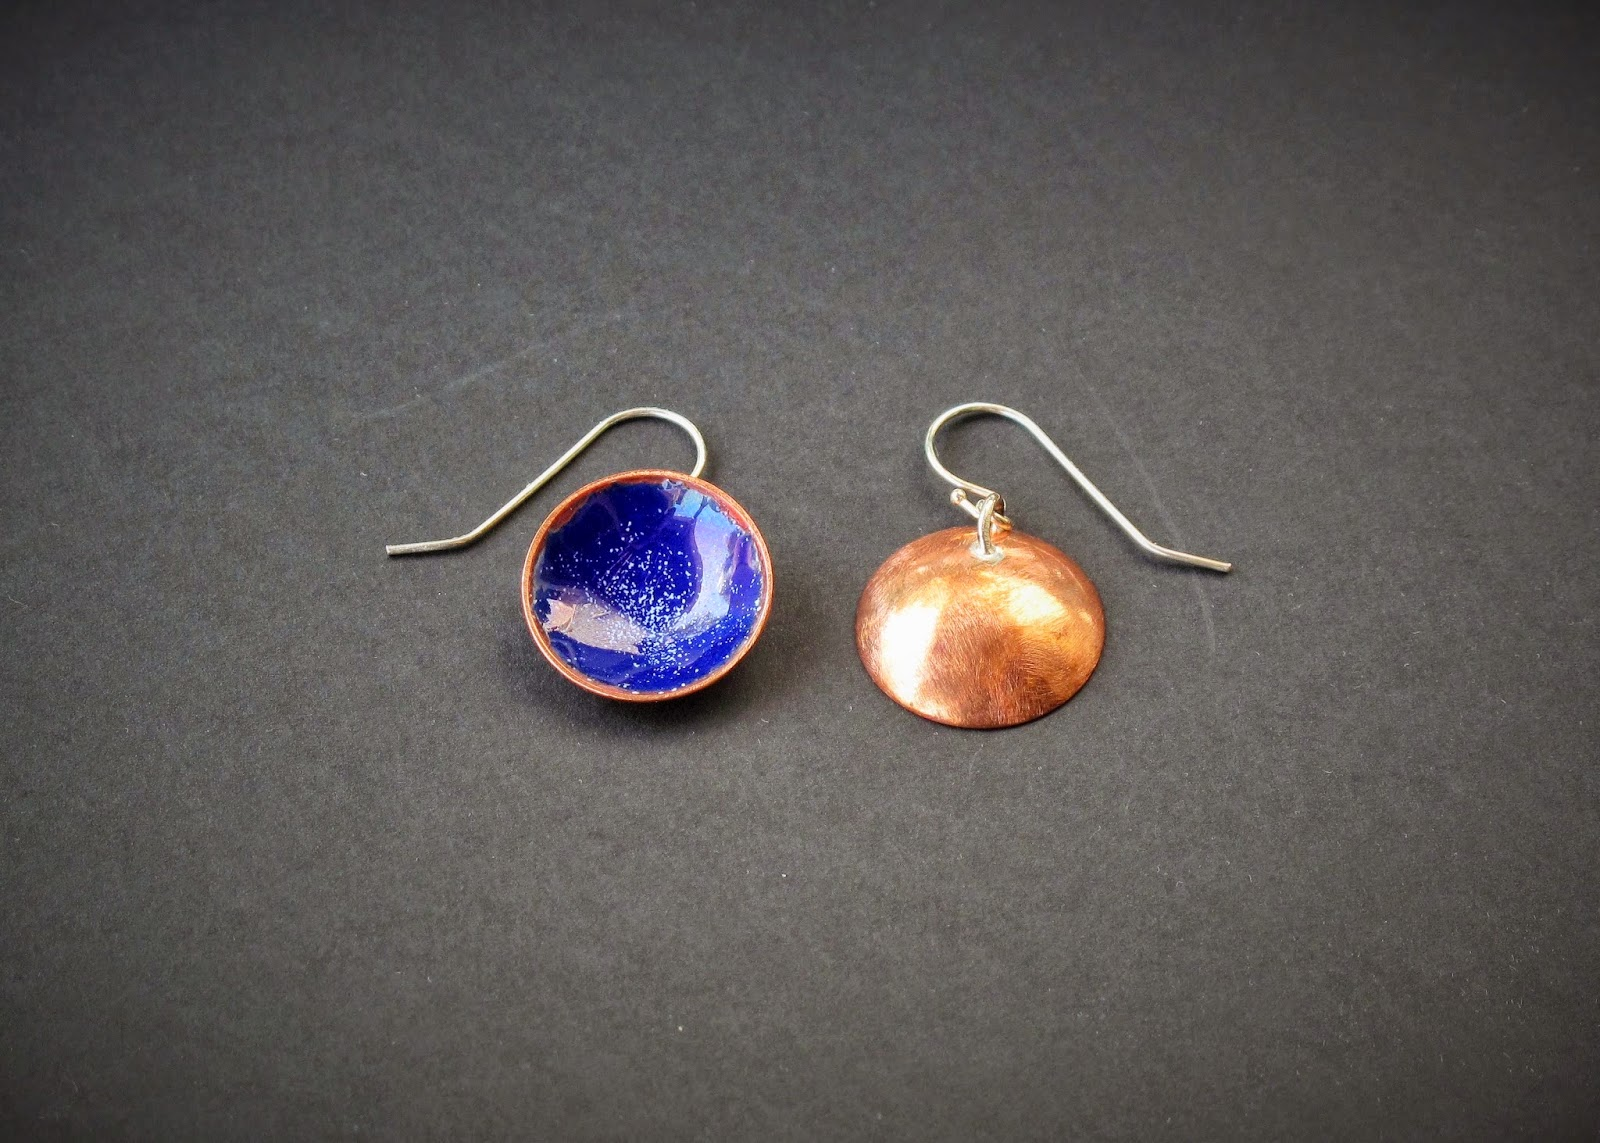 https://www.etsy.com/listing/232547391/enamel-copper-cup-dangle-earrings?ref=shop_home_active_2